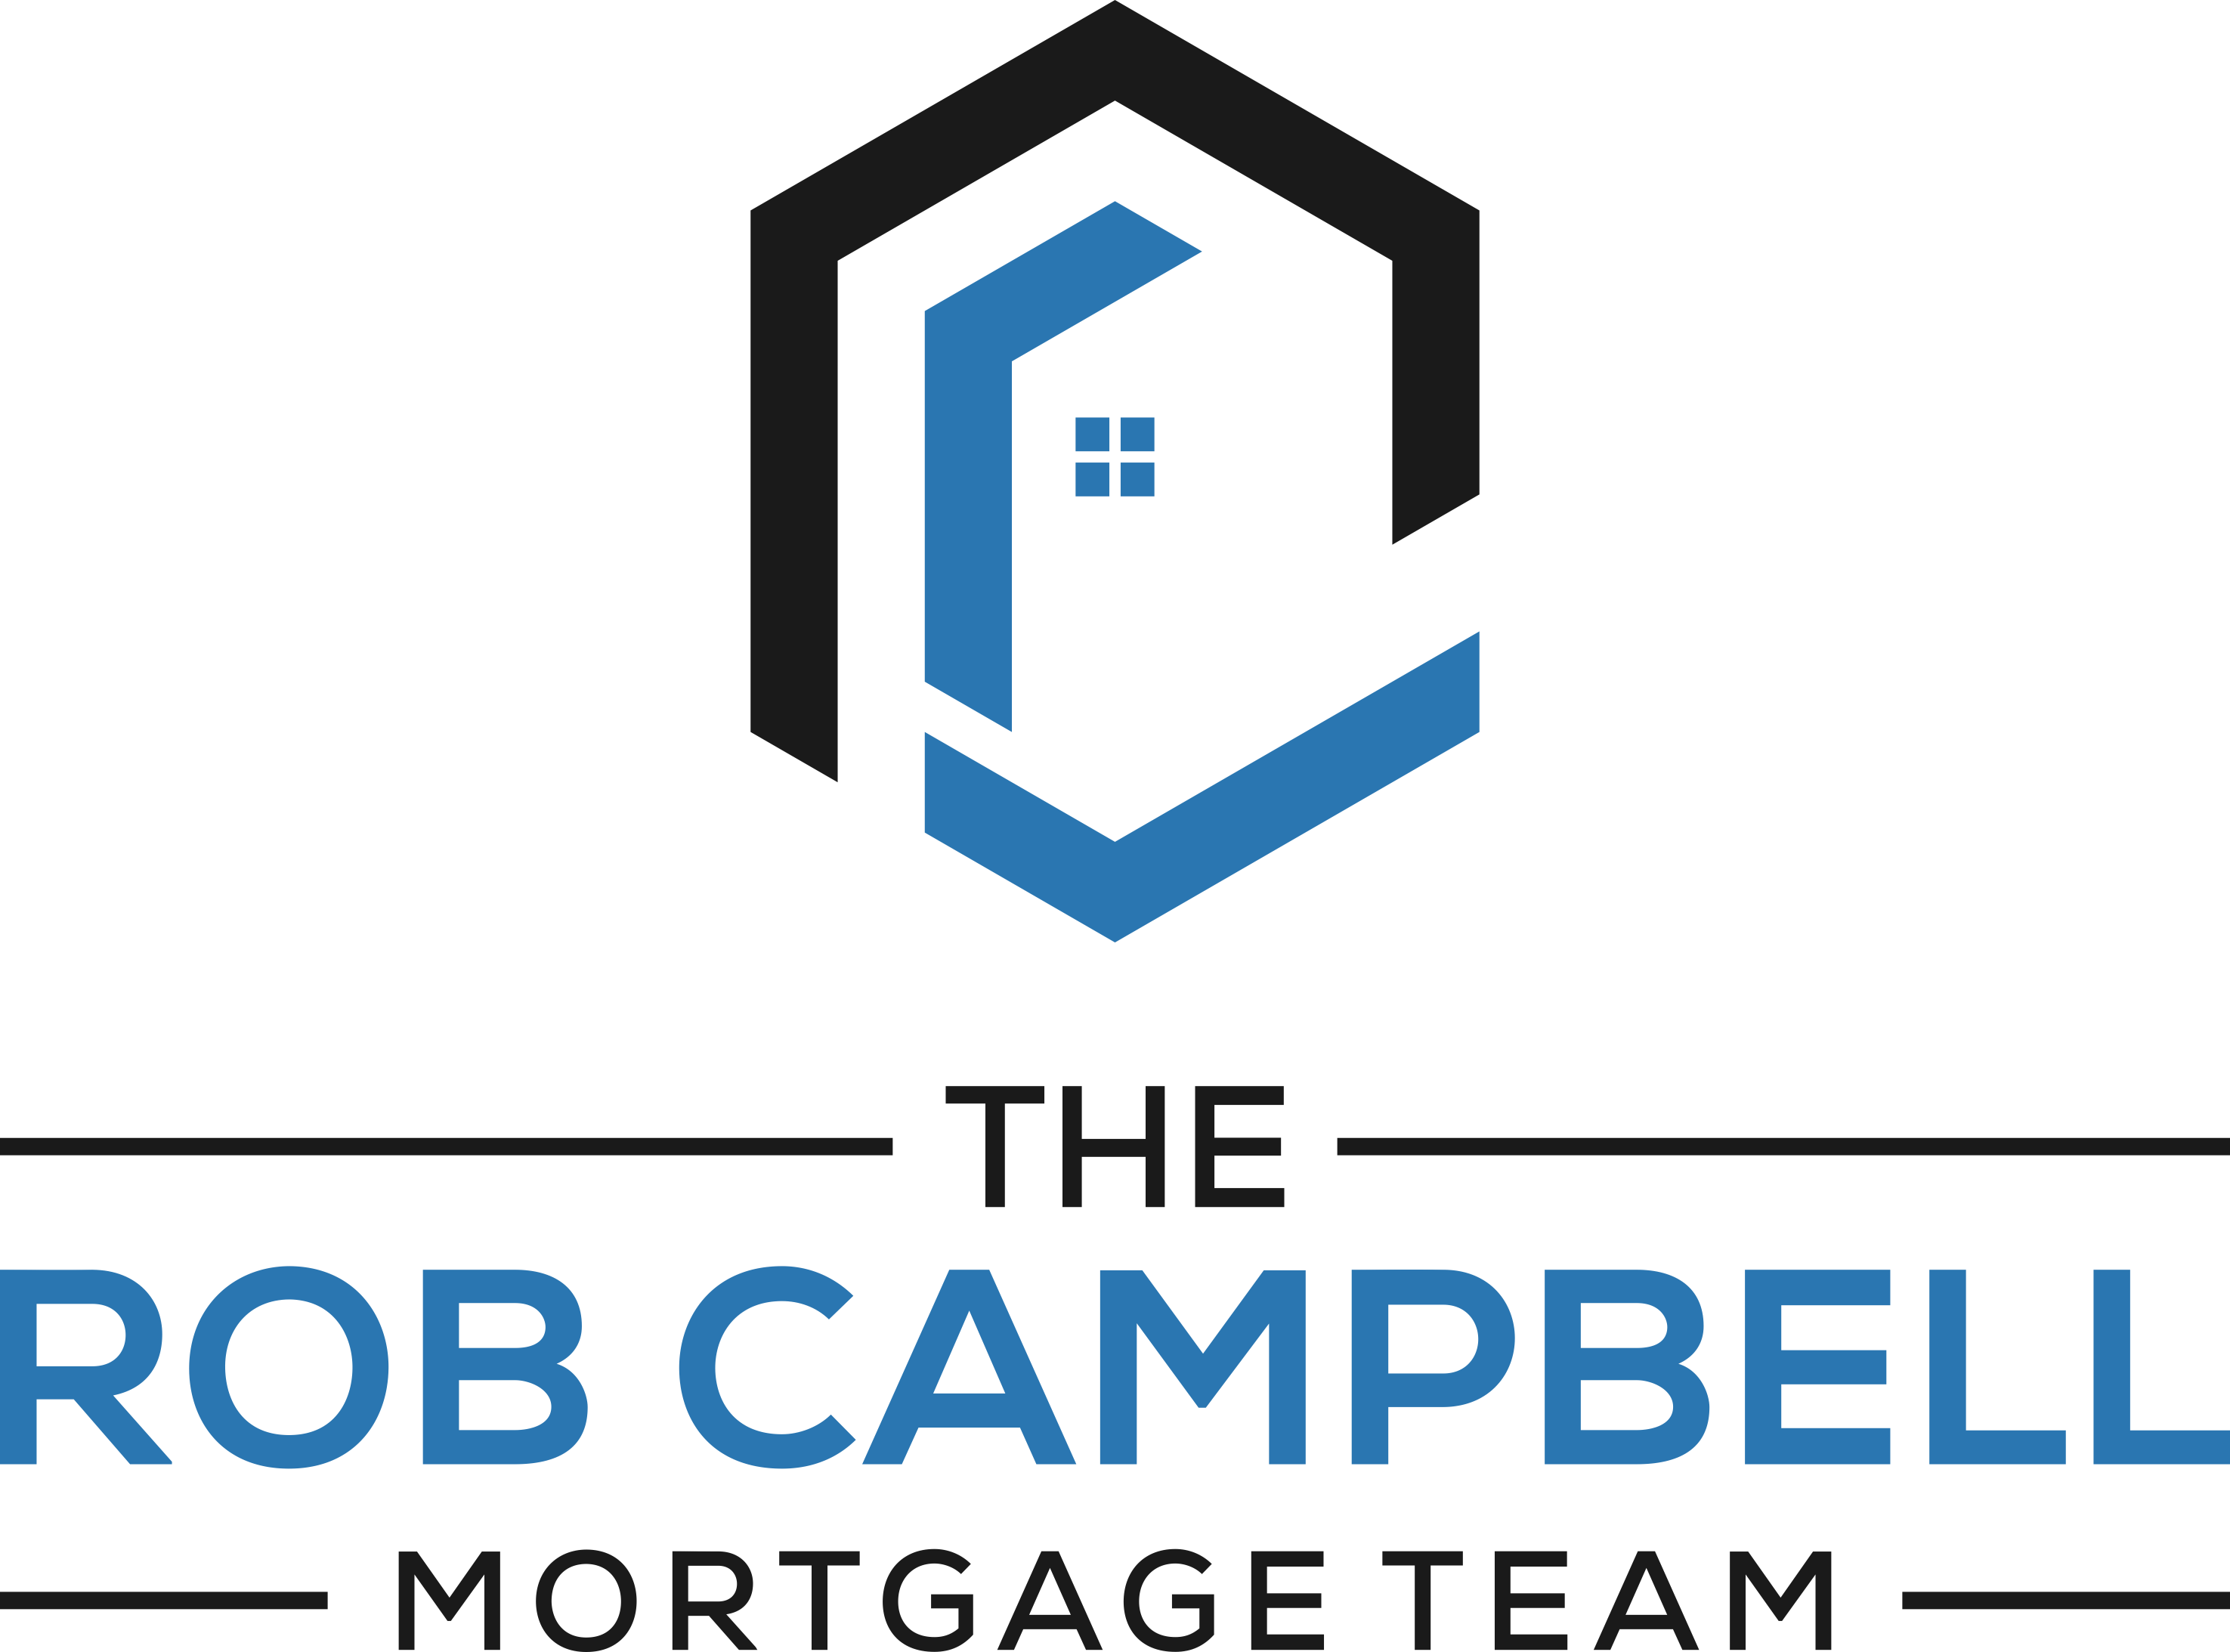 The Rob Campbell Mortgage Team